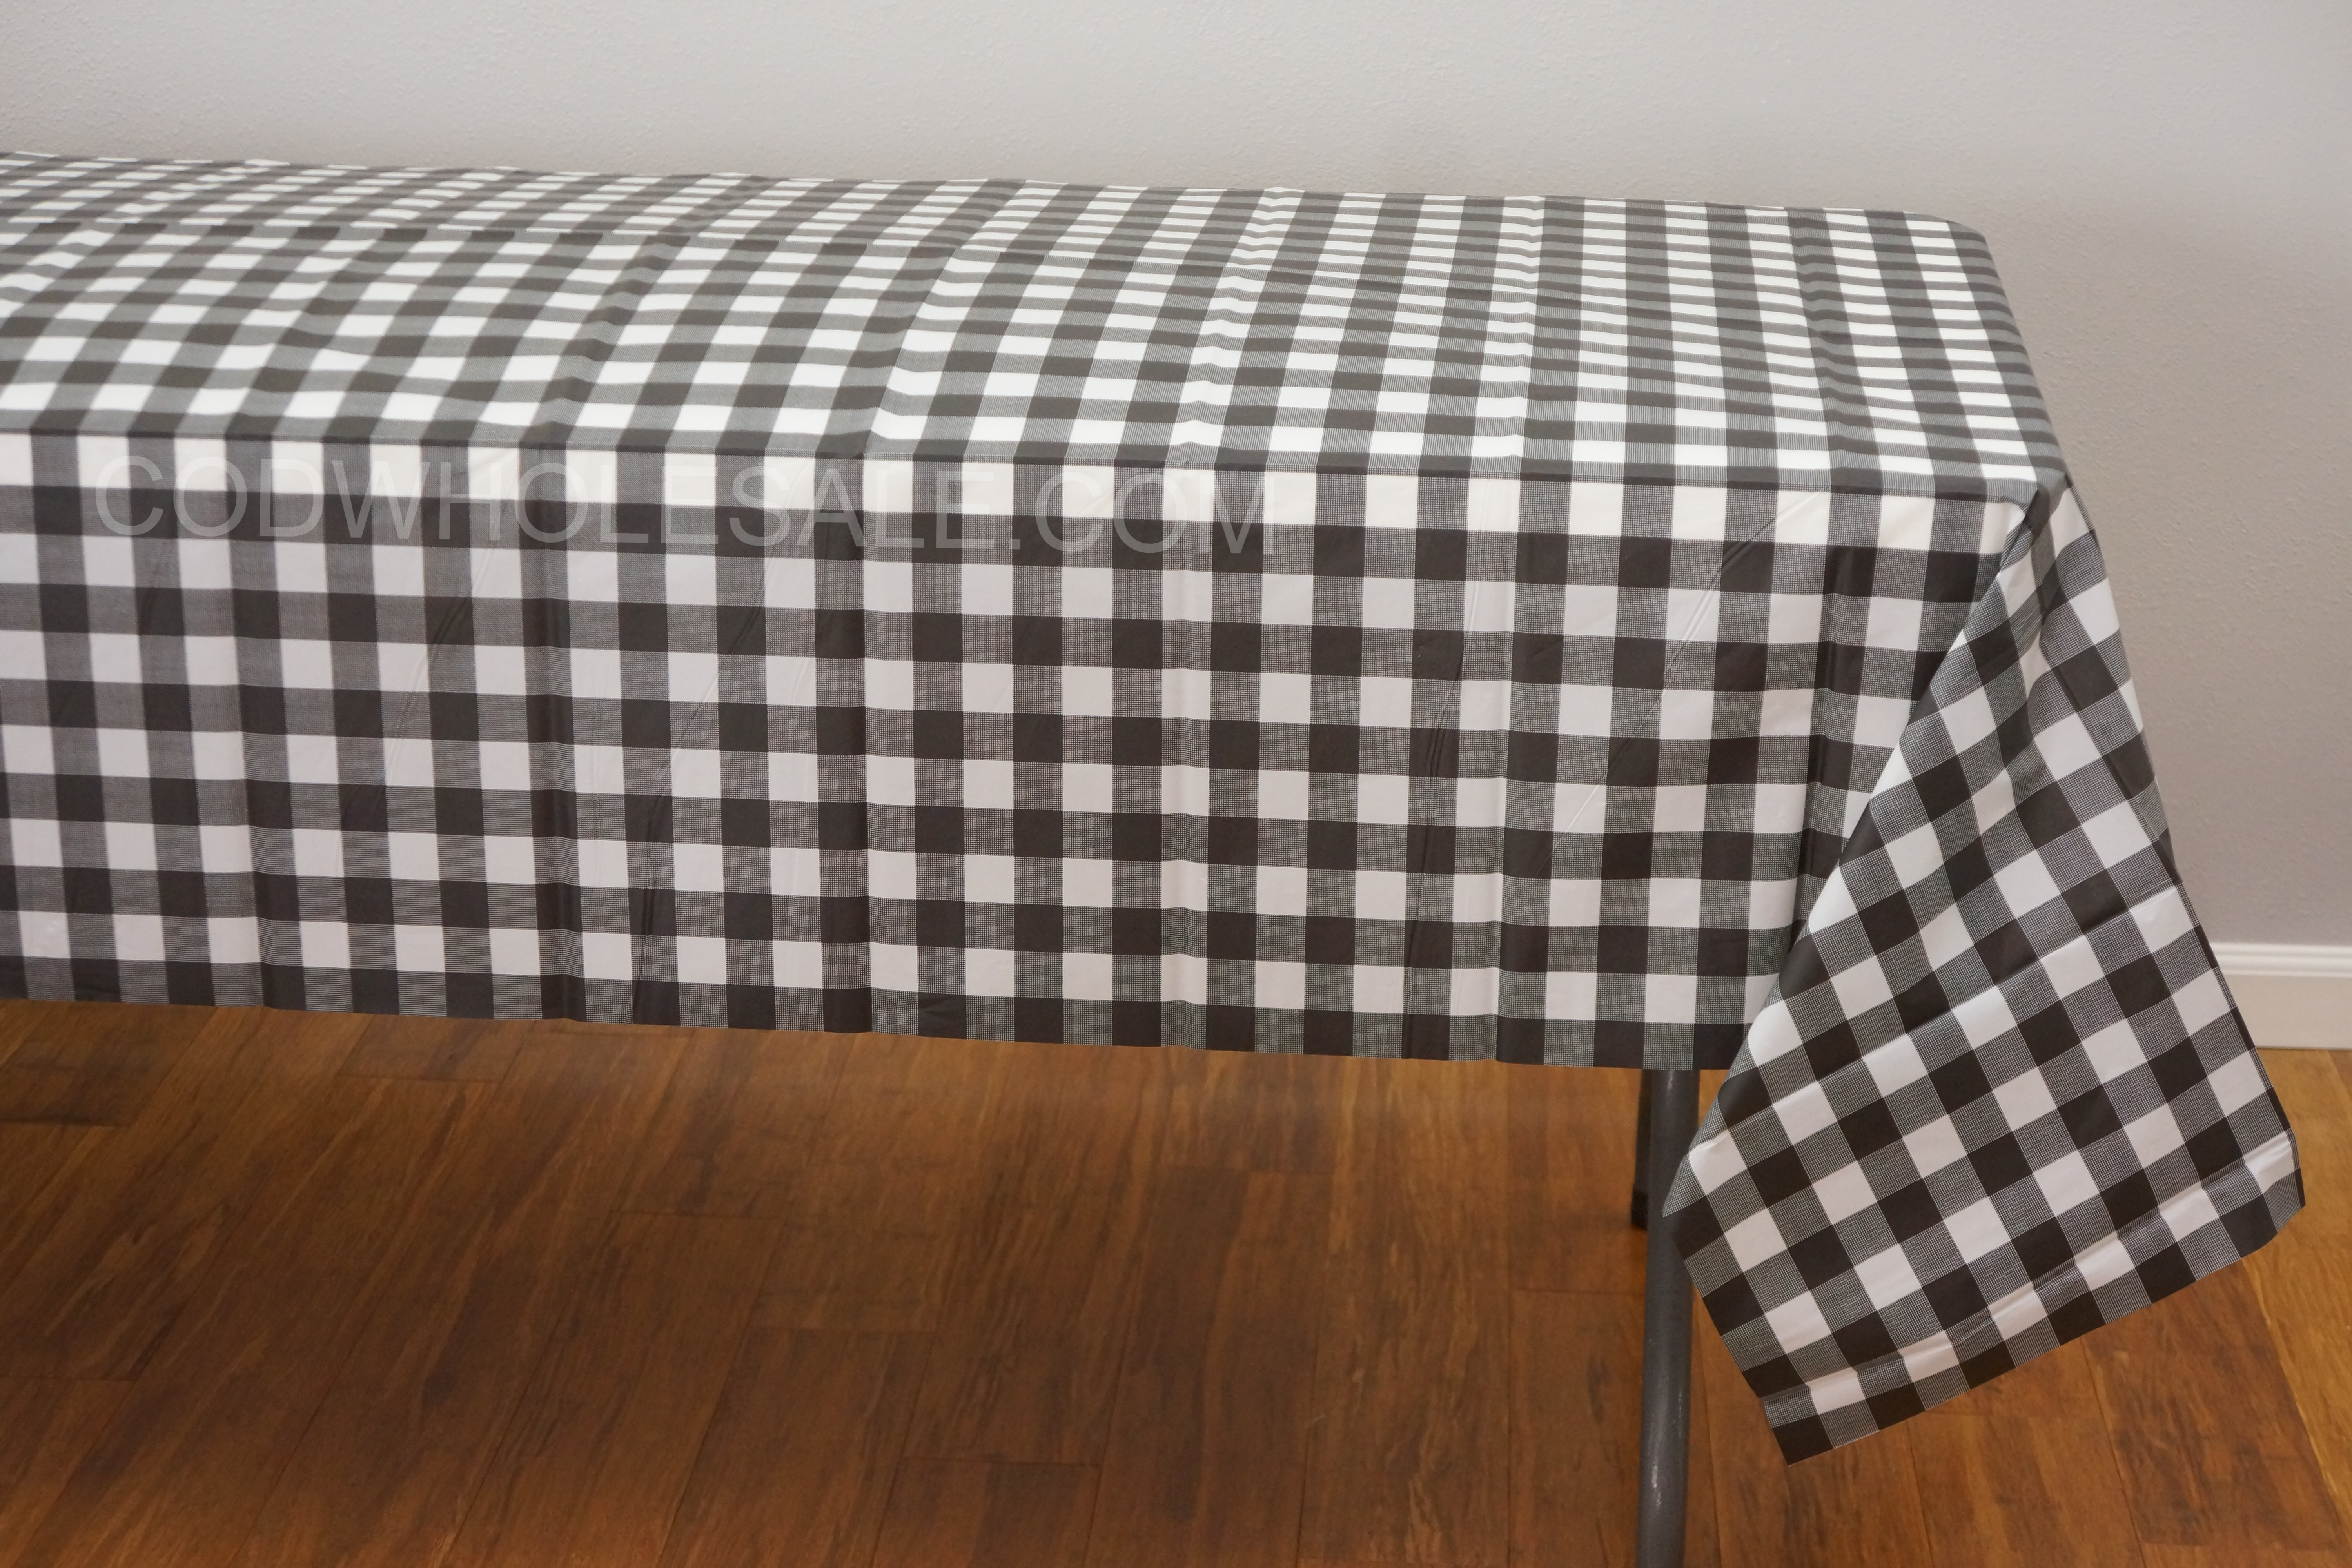 Black Rectangle Plaid Tablecloths